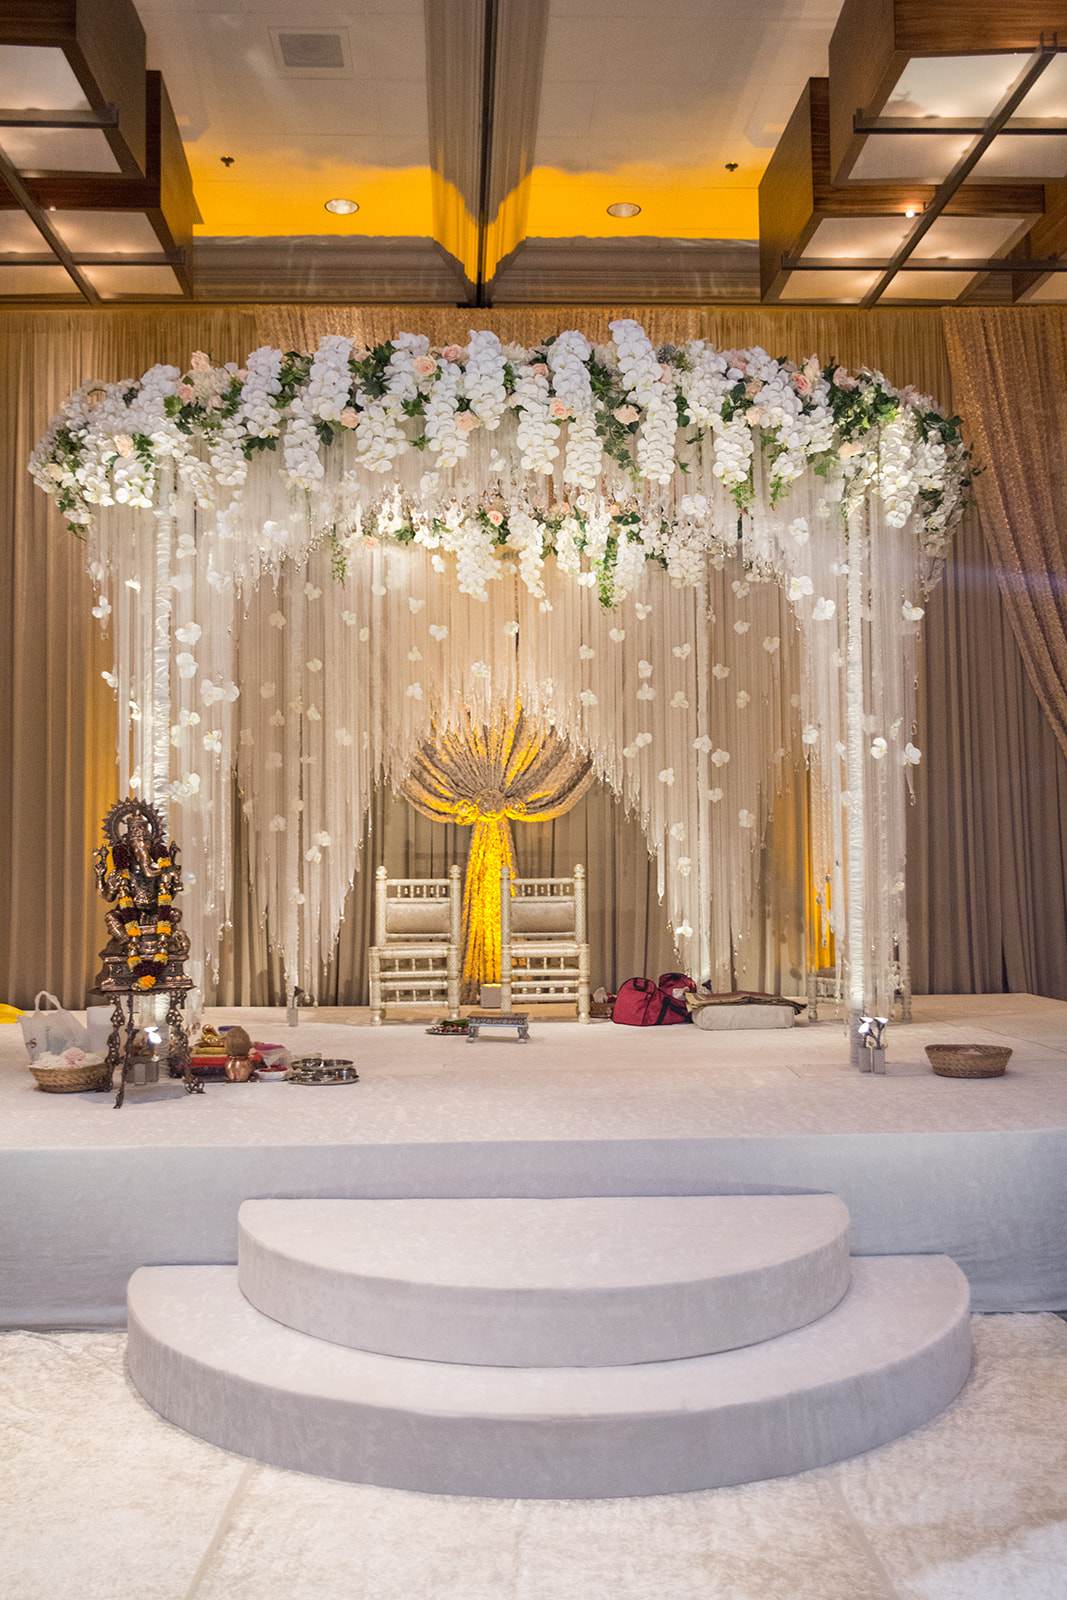 Le Cape Weddings - Puja and Kheelan - Ceremony Details -19.jpg